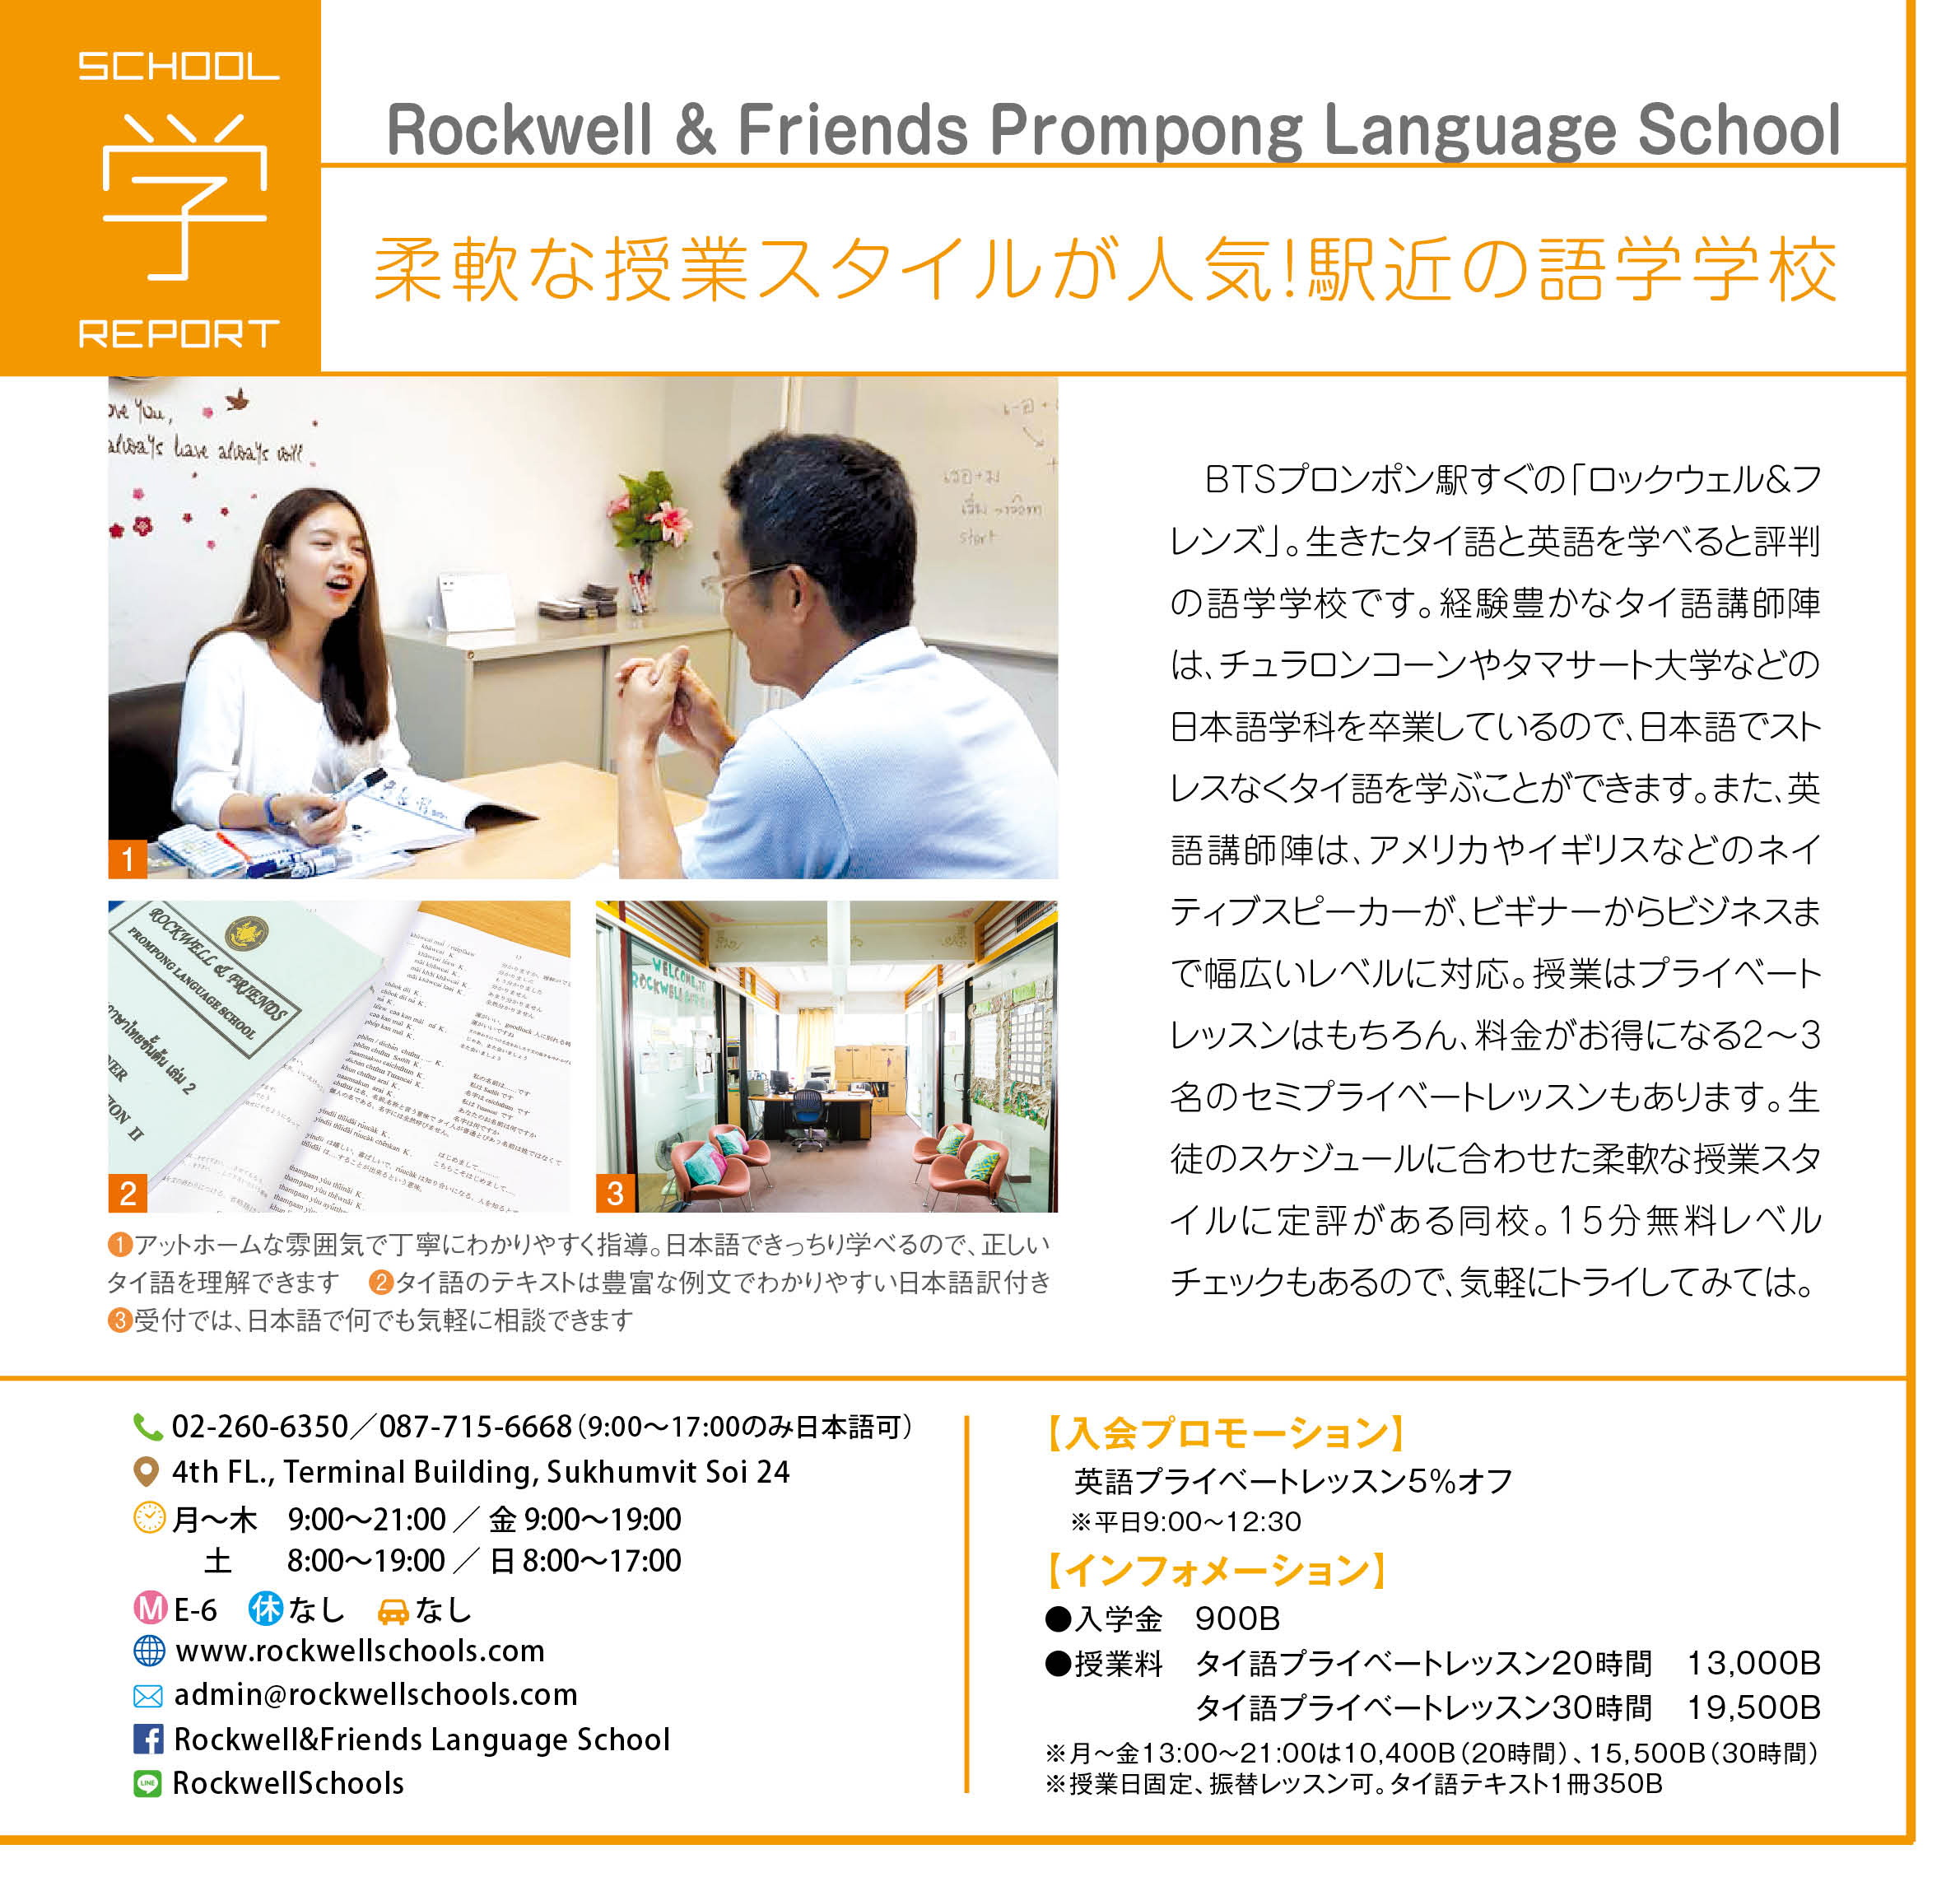 580_School Report_ROCKWELL1Nov